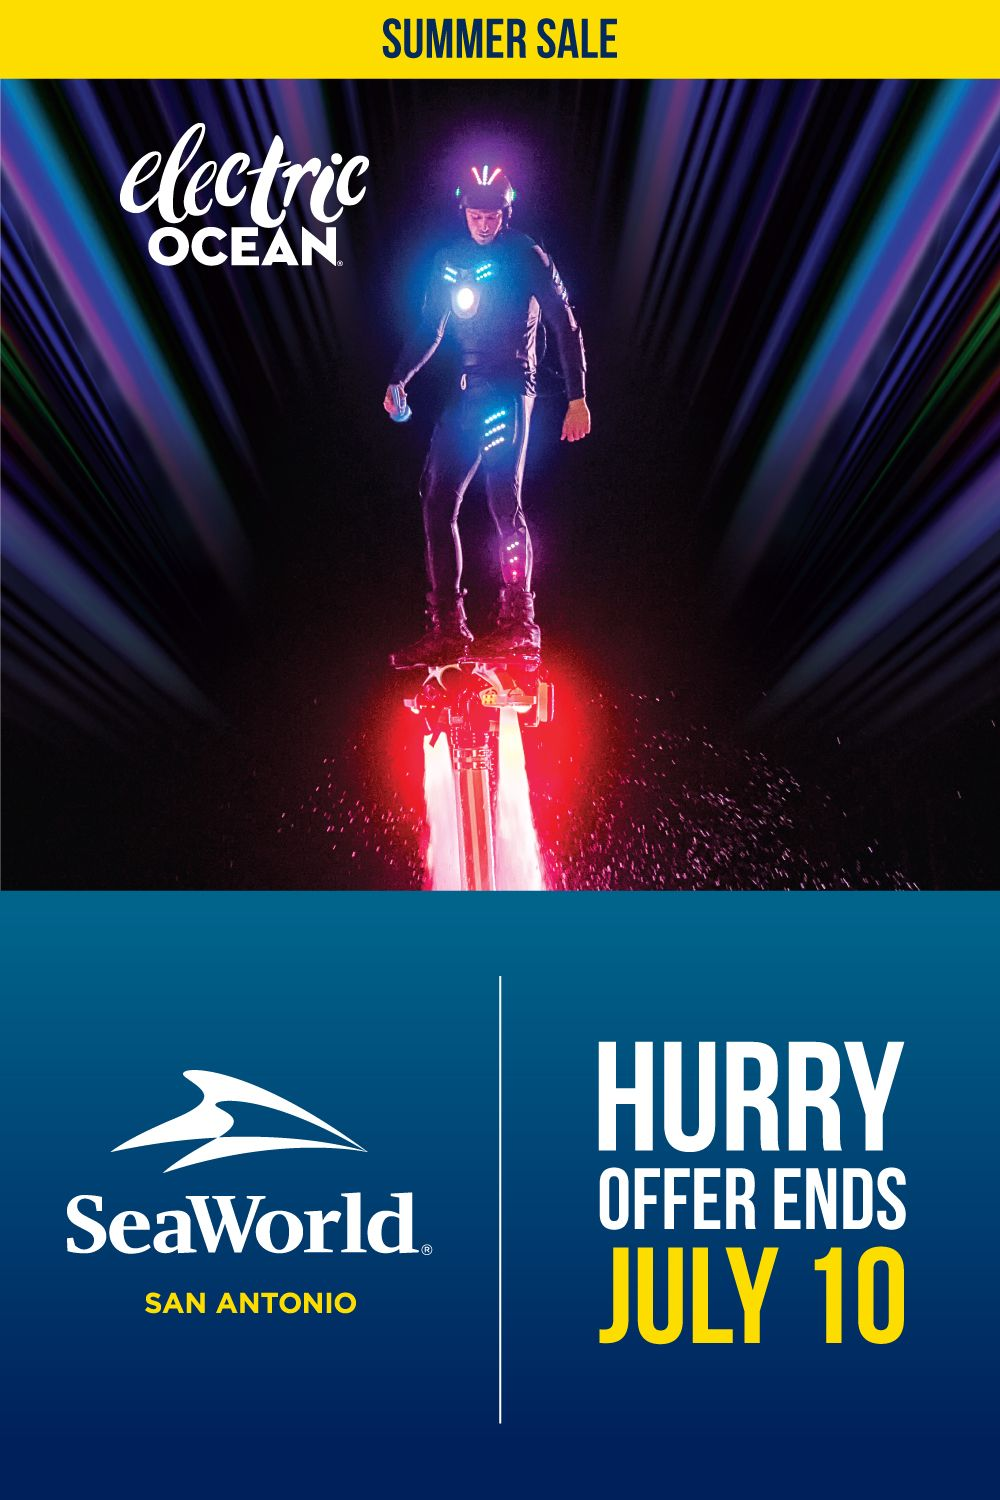 Get Single Day Tickets For Just 32 99 Must Use By 8 30 Hurry Offer Ends July 10 Seaworld San Antonio Sea World Texas Theme